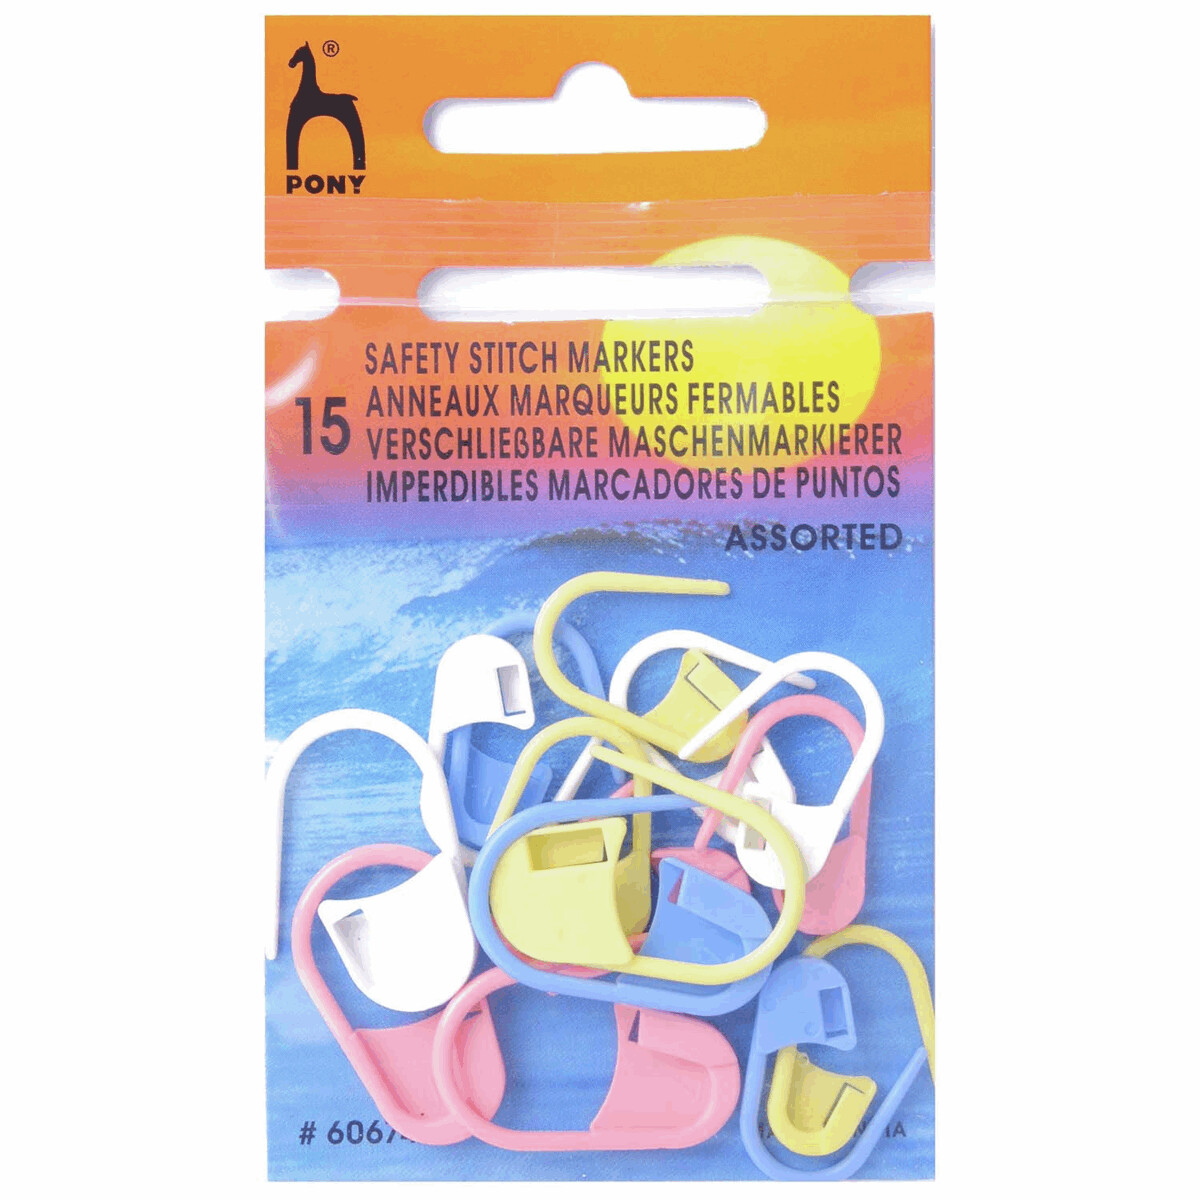 Pony Assorted Safety Stitch Markers to fit up to 10mm needles.